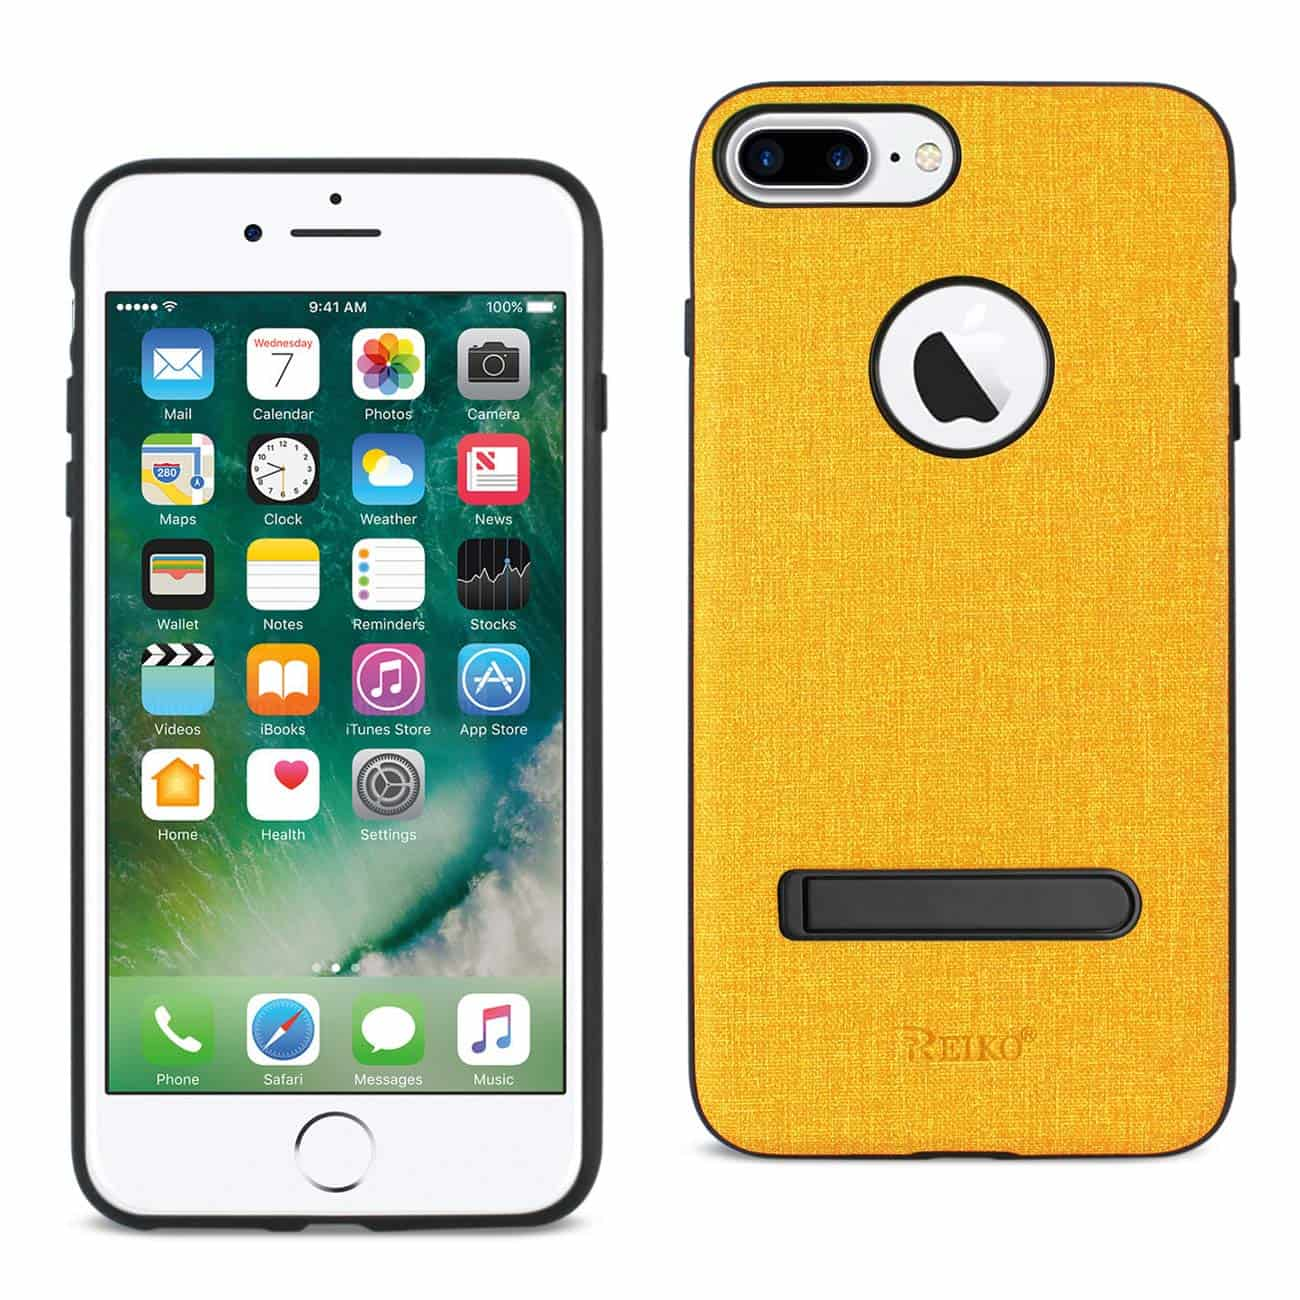 IPHONE 7 PLUS/ 6S PLUS/ 6 PLUS RUGGED TEXTURE TPU PROTECTIVE COVER IN YELLOW